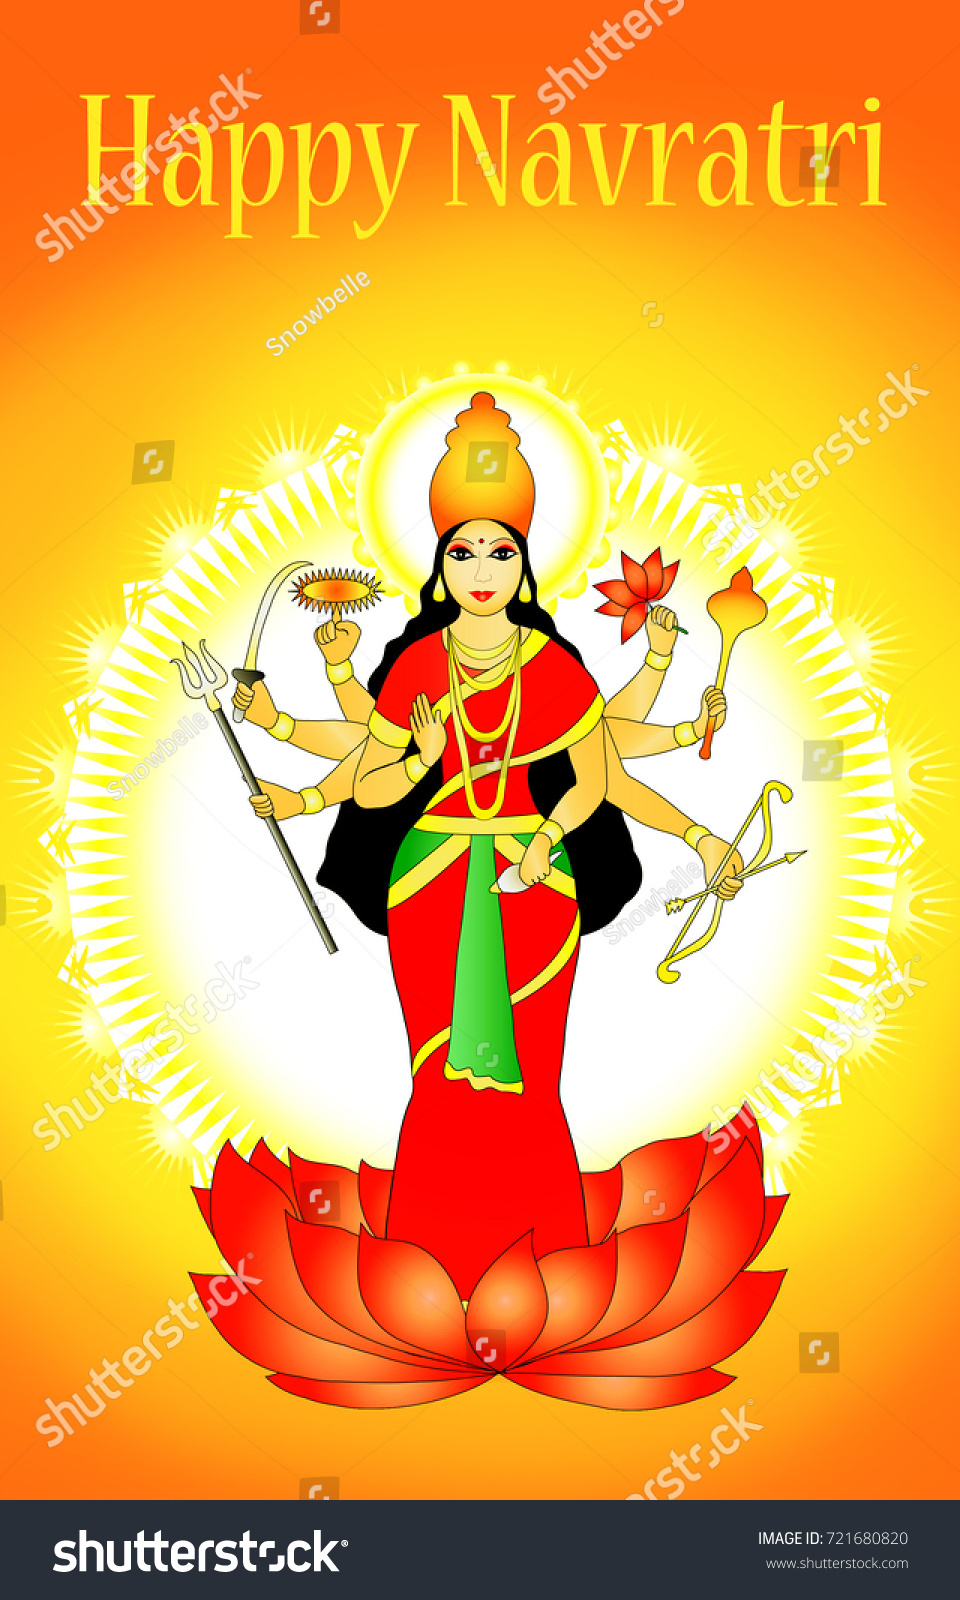 Illustration goddess durga on greeting card stock illustration illustration of goddess durga on greeting card for navratri festival with message happy navratri navaratri kristyandbryce Choice Image